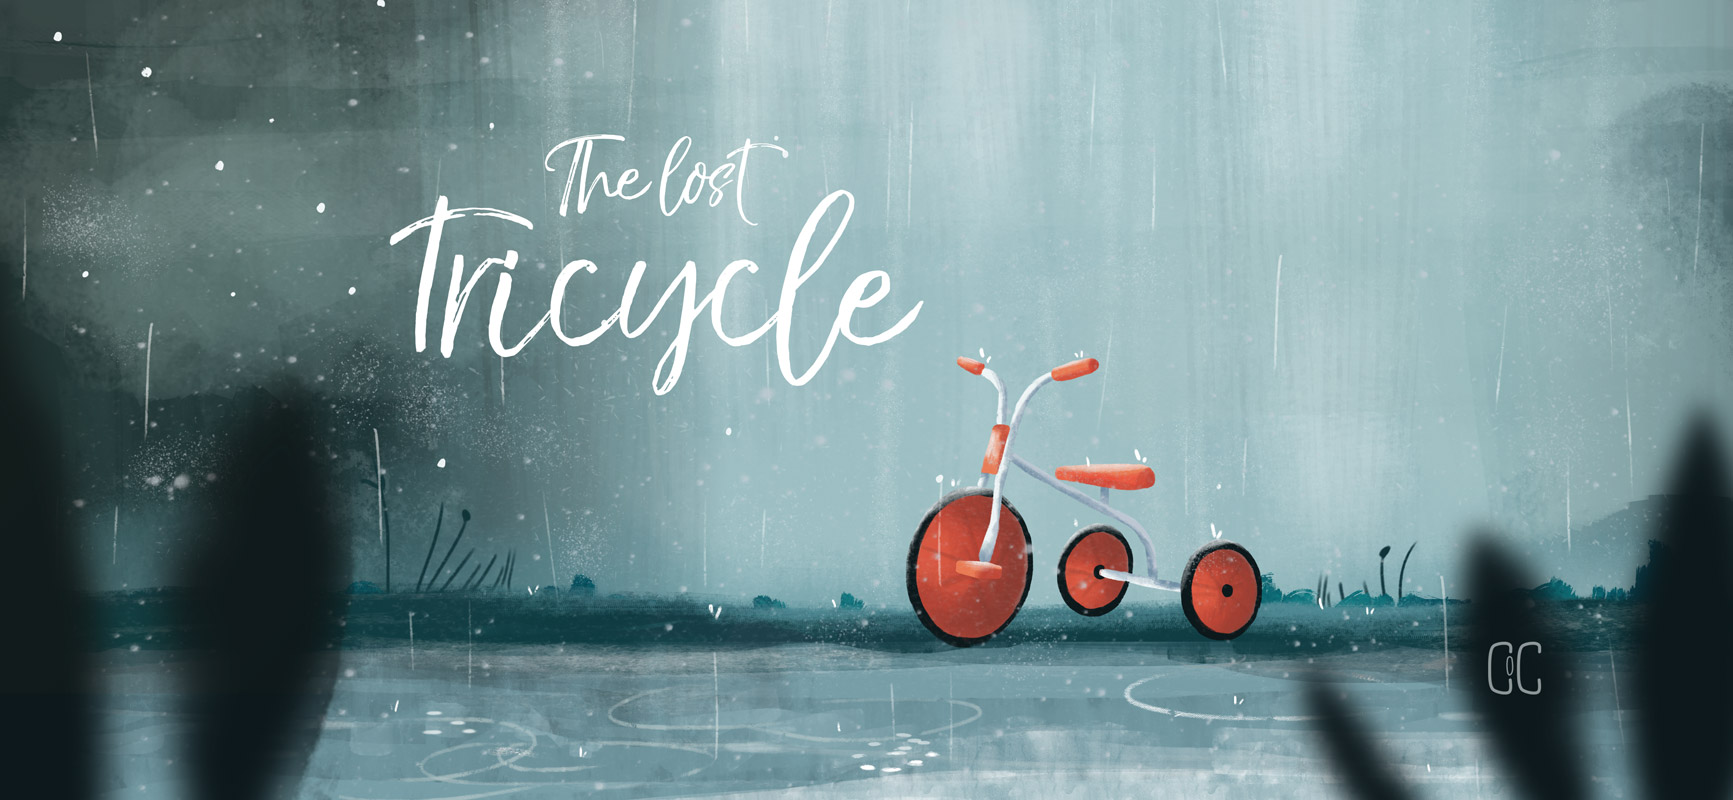 THE LOST TRICYCLE